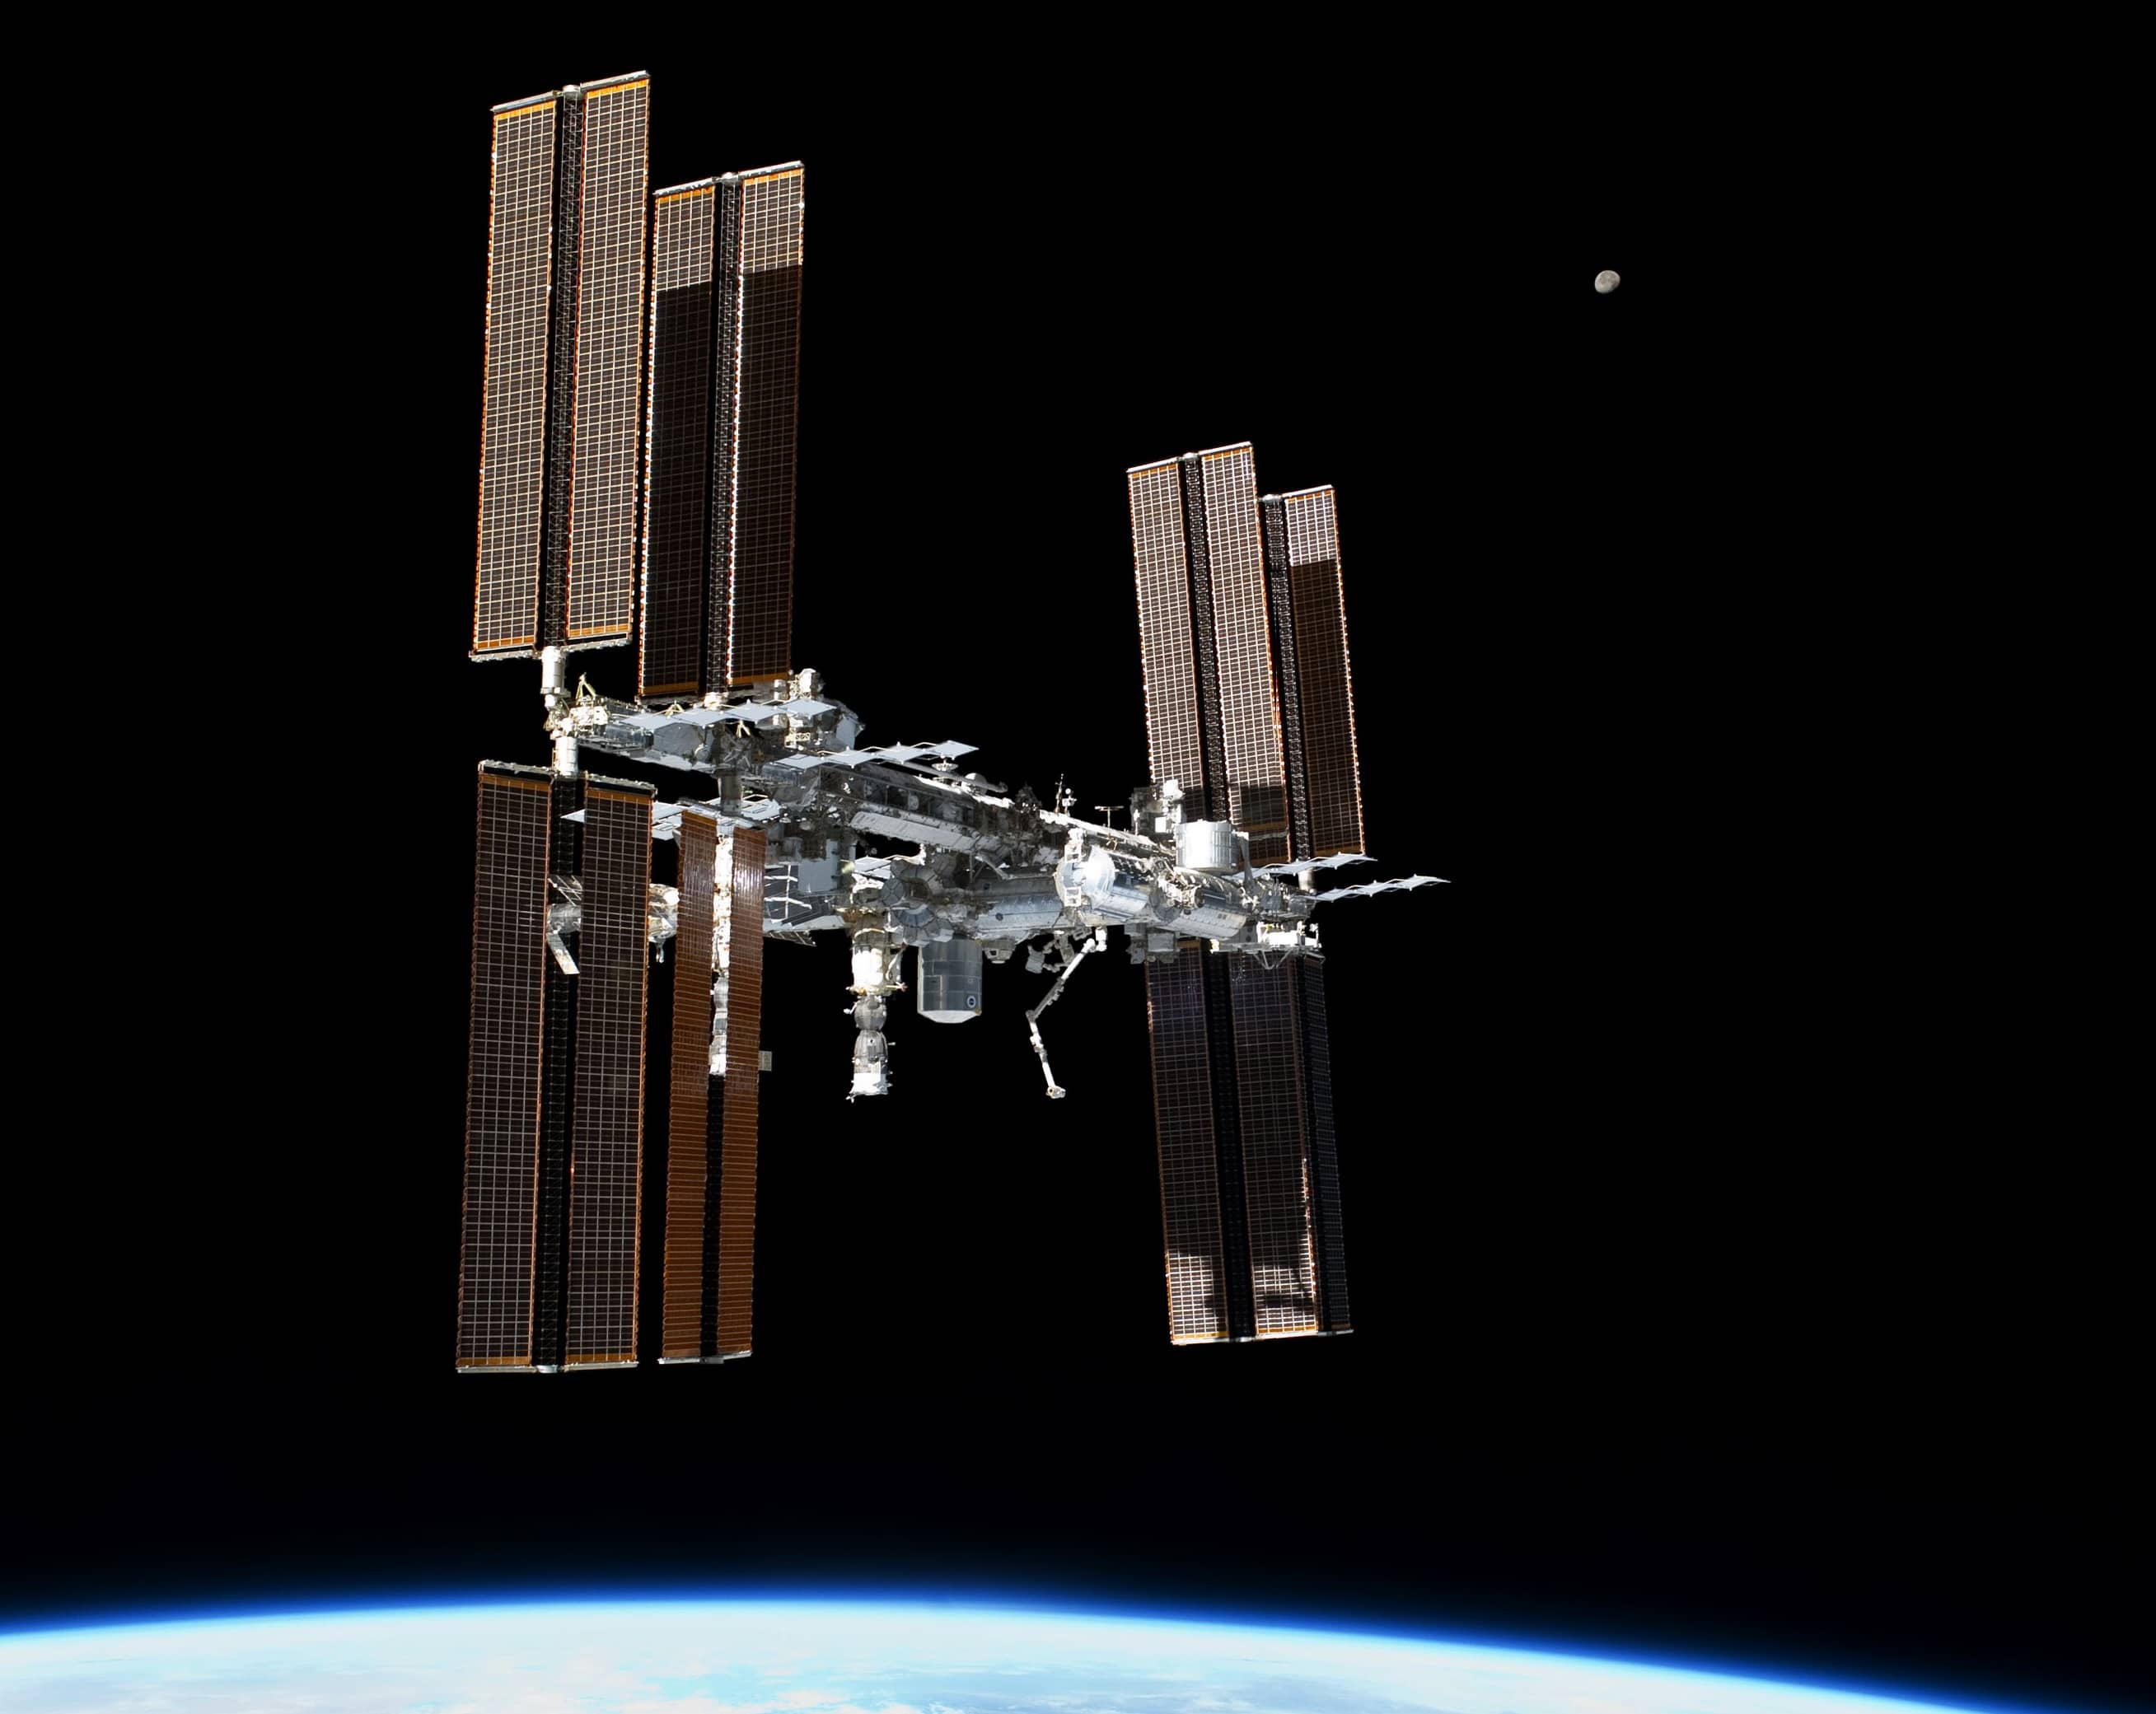 2 Russians Venture Into Open Space From Space Station